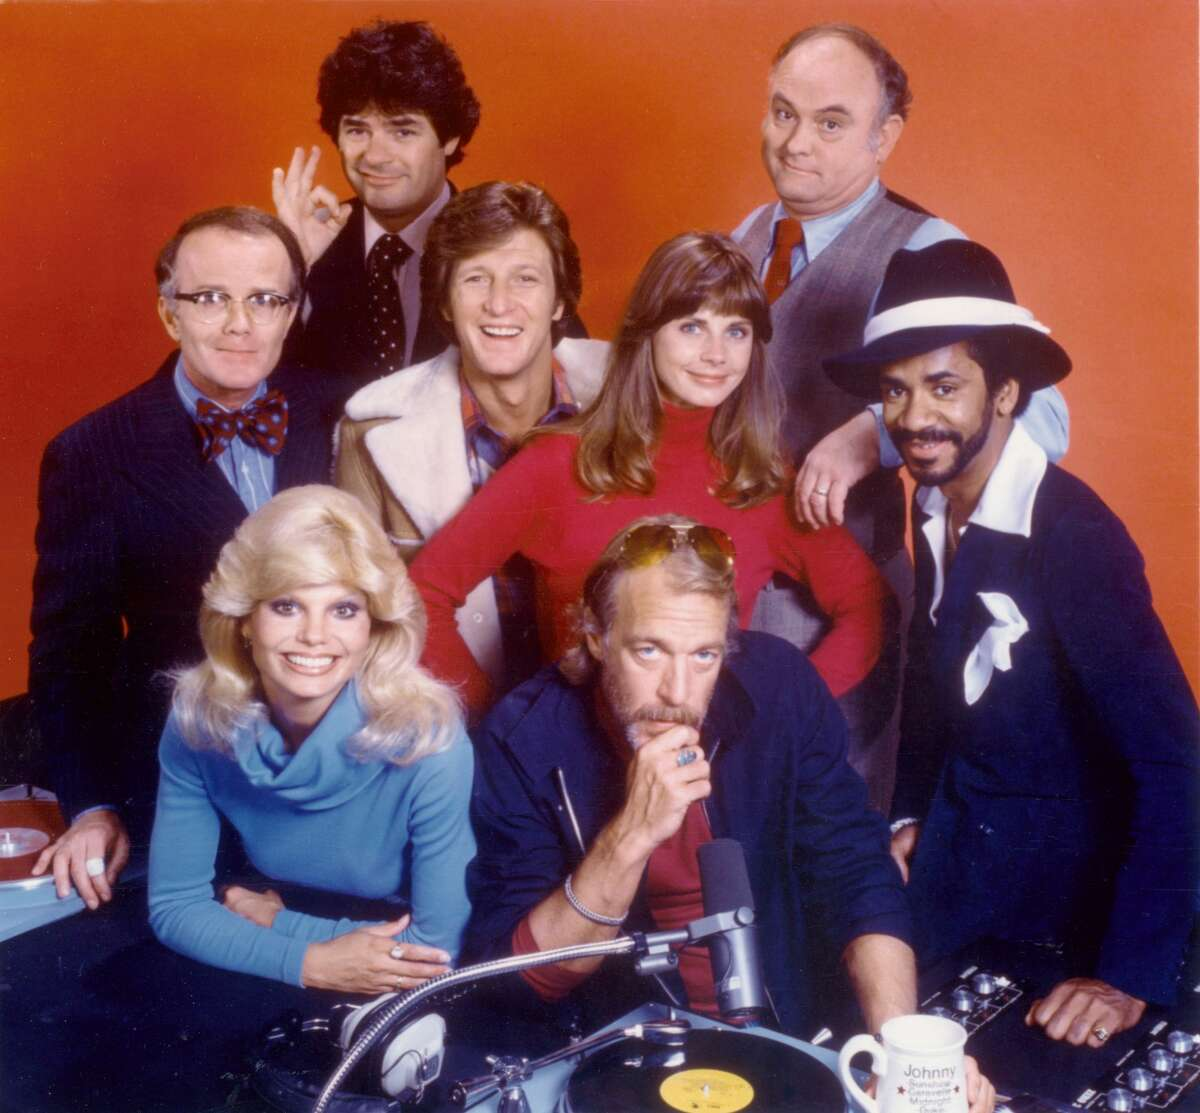 """Cast members (from left) Richard Sanders, Frank Bonner (in back), Loni Anderson, Gary Sandy, Howard Hesseman (seated in front), Jan Smithers, Gordon Jump and Tim Reid, star in the CBS television series """"WKRP in Cincinnati."""" Image dated 1979. (Photo by CBS via Getty Images)"""